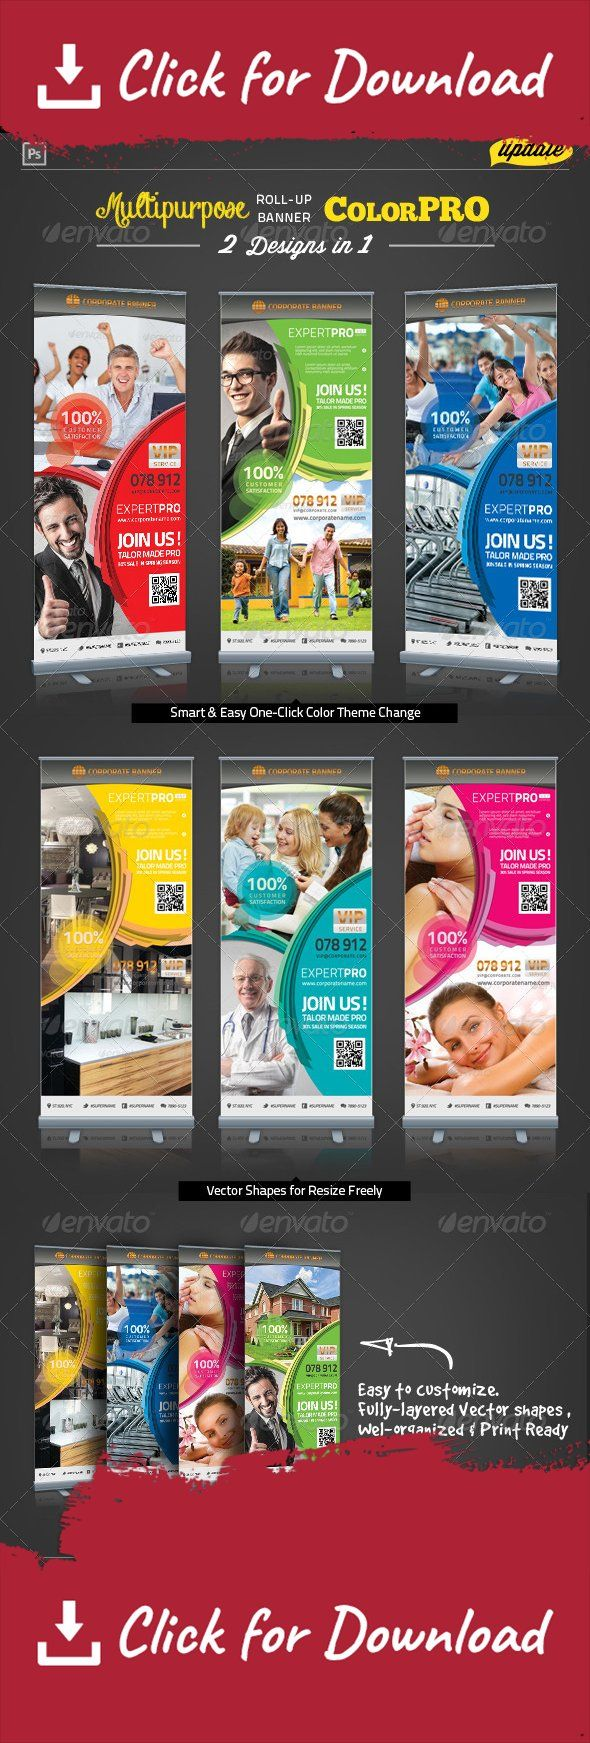 agent, auto, automotive, baby, banner, beauty, car, children, club, cooking, dental clinic, dentist, education, fitness, furniture, gym, house, kid, kitchen, massage, outdoor, real estate, roll-up, salon, school, social, spa, template, training, university [ Corporate Roll-up Banner – Expert Pro]   30×70 in + 2.0in bleed.  100DPI, CMYK Print Ready Easy to customize and Multiple Color Themes Incl.  Excellent for your multipurpose corporate usage. Updated on 22 Jan,2014  Adding a n...